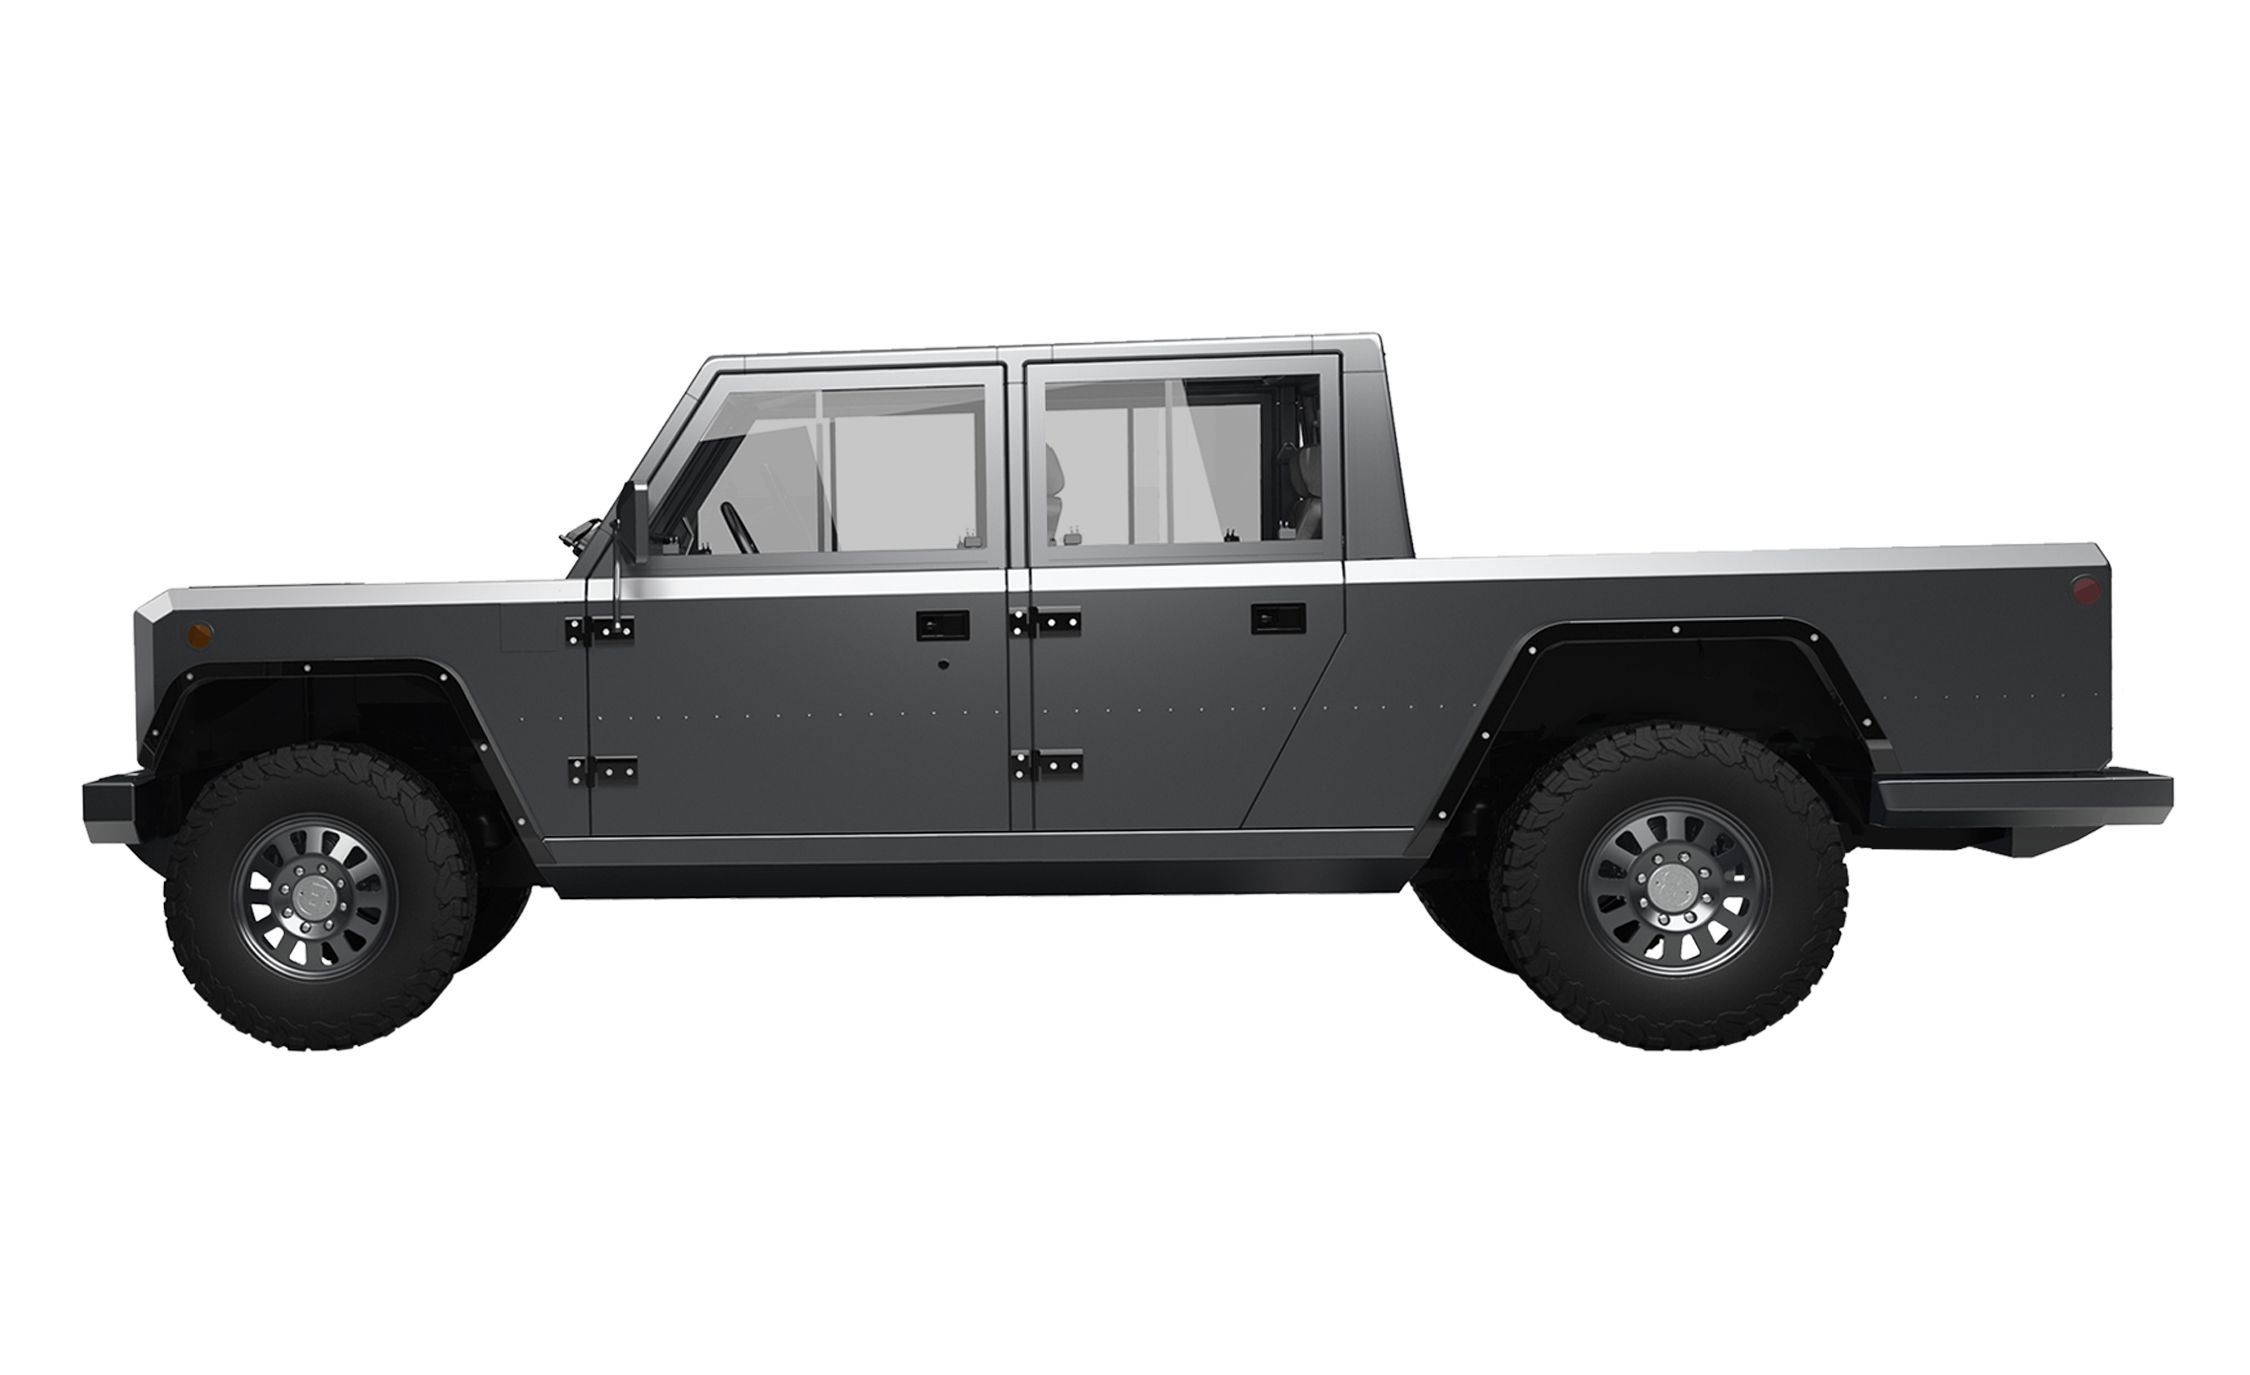 Bollinger, an EV Startup, to Develop a Battery-Electric Pickup Truck